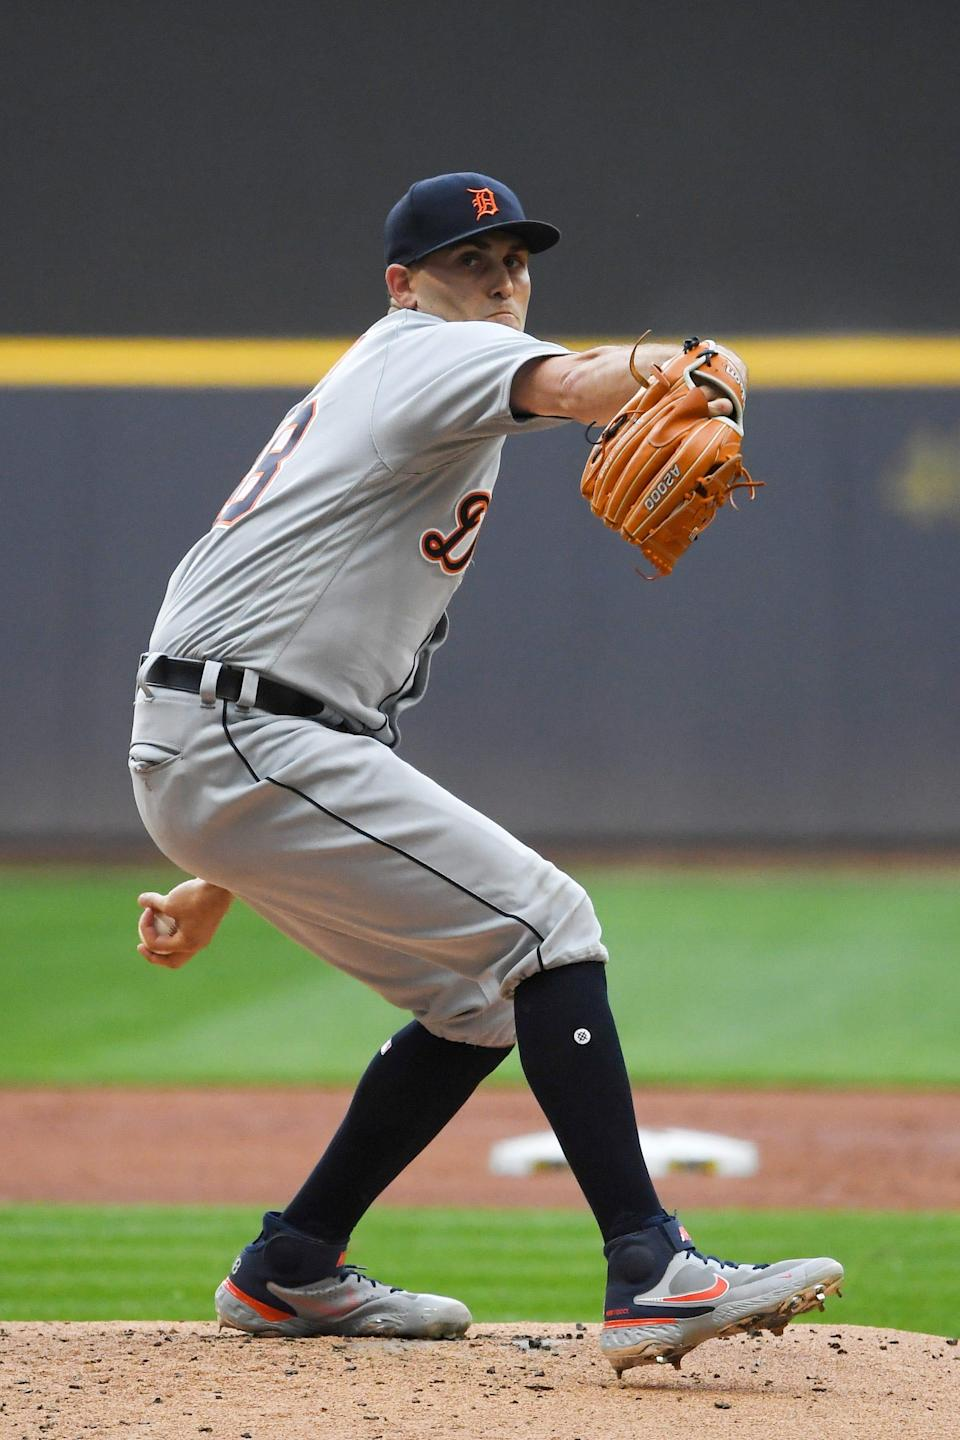 Tigers pitcher Matthew Boyd throws in the first inning on Tuesday, June 1, 2021, in Milwaukee.